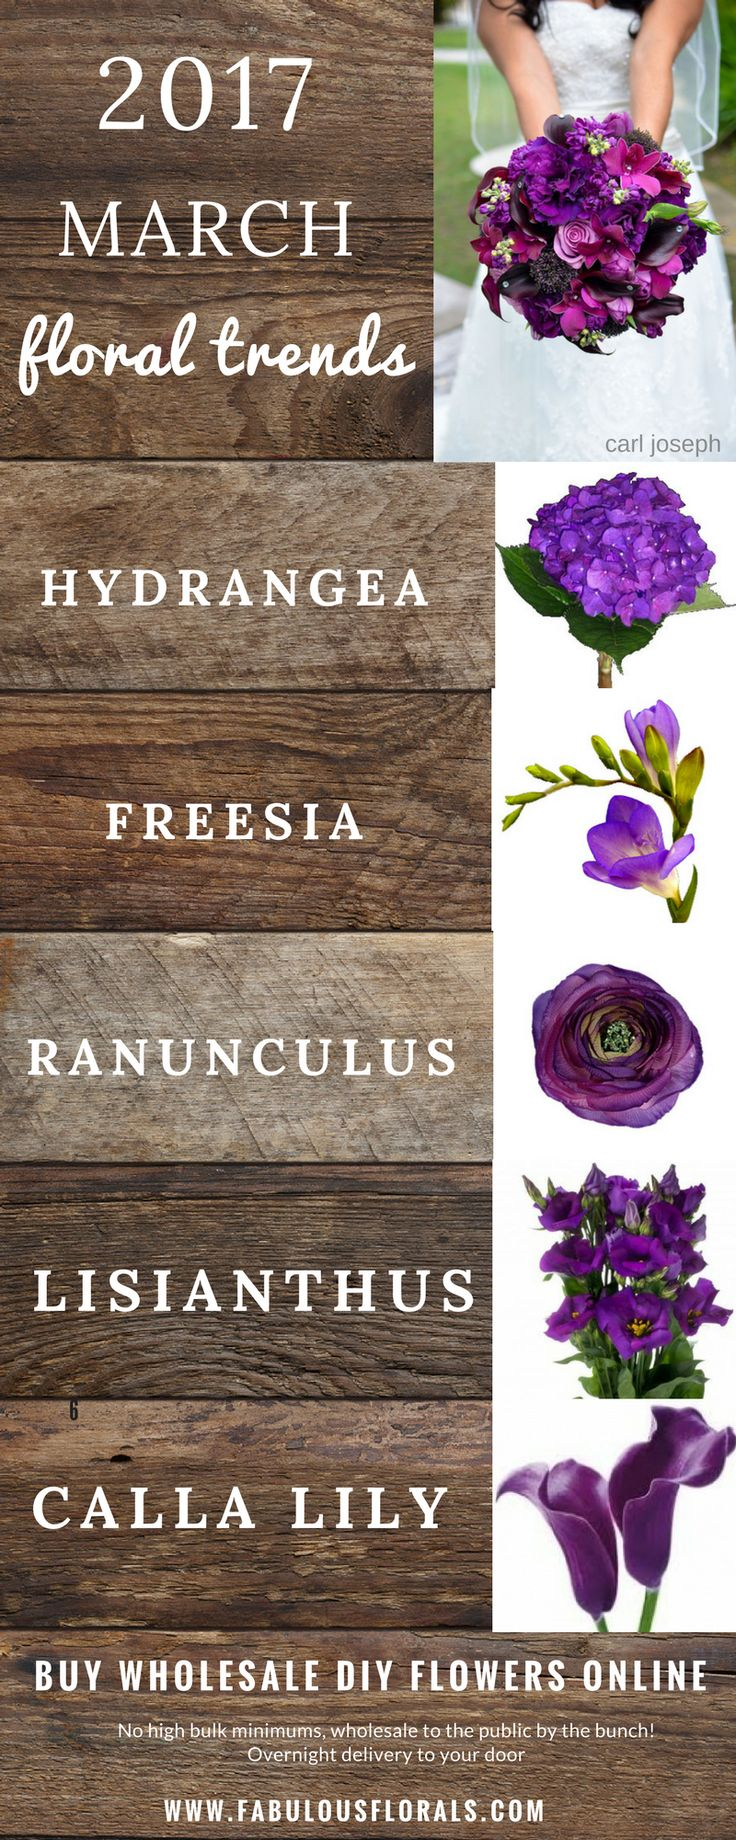 2017 MARCH Seasonal  wedding flower trends! www.fabulousflorals.com The DIY bride's #1 source for wholesale flowers! #winterflowers #diyflowers #diywedding #marchflowers